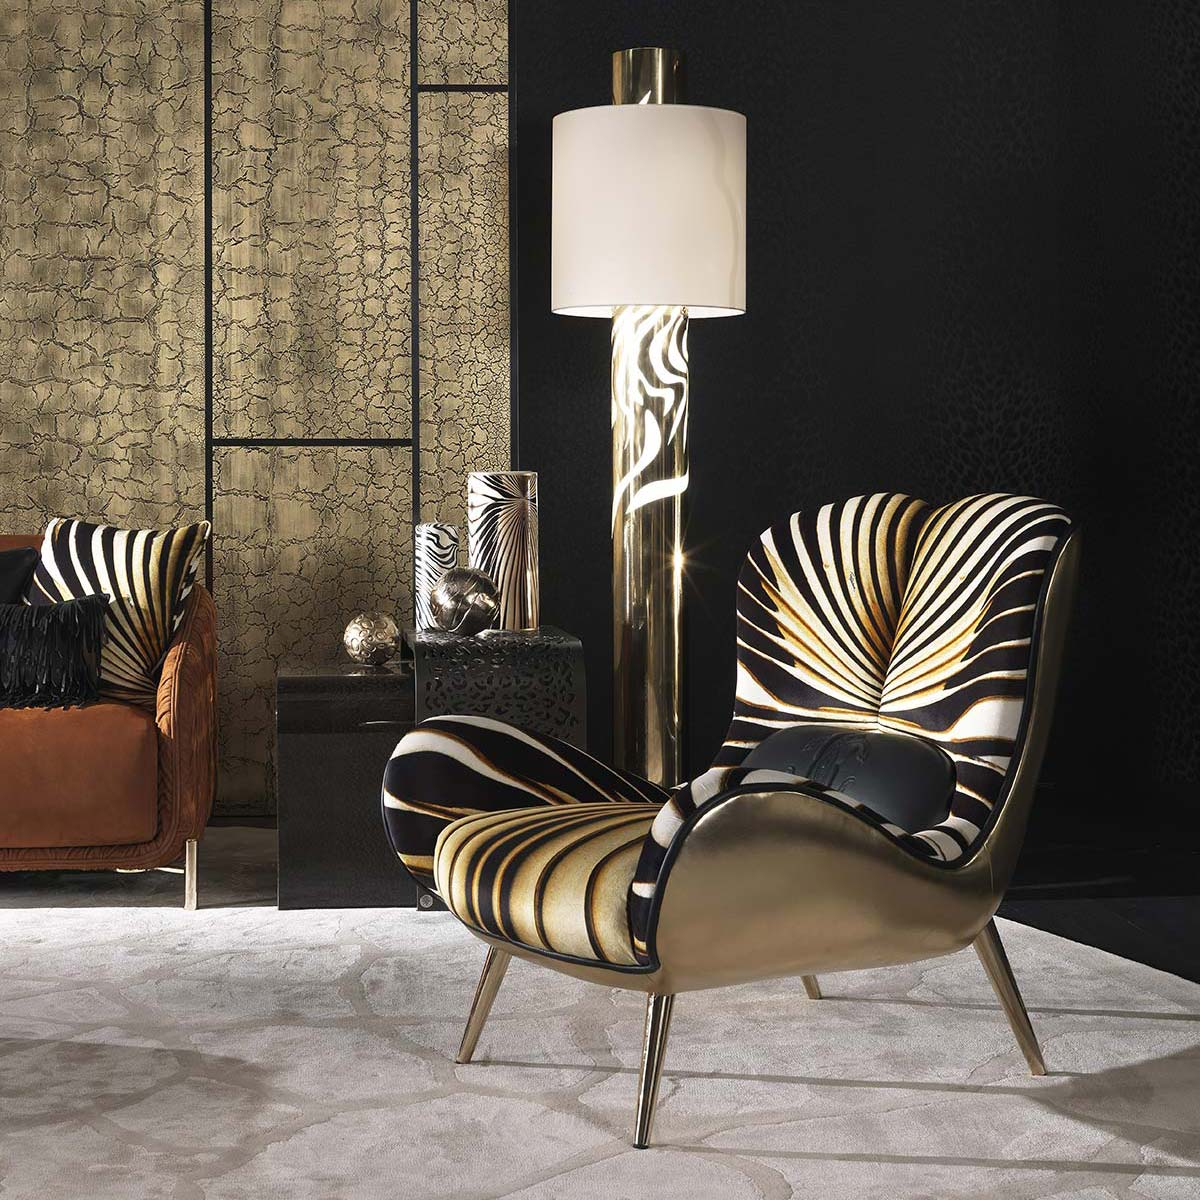 Tifnit by Roberto Cavalli Home Interiors